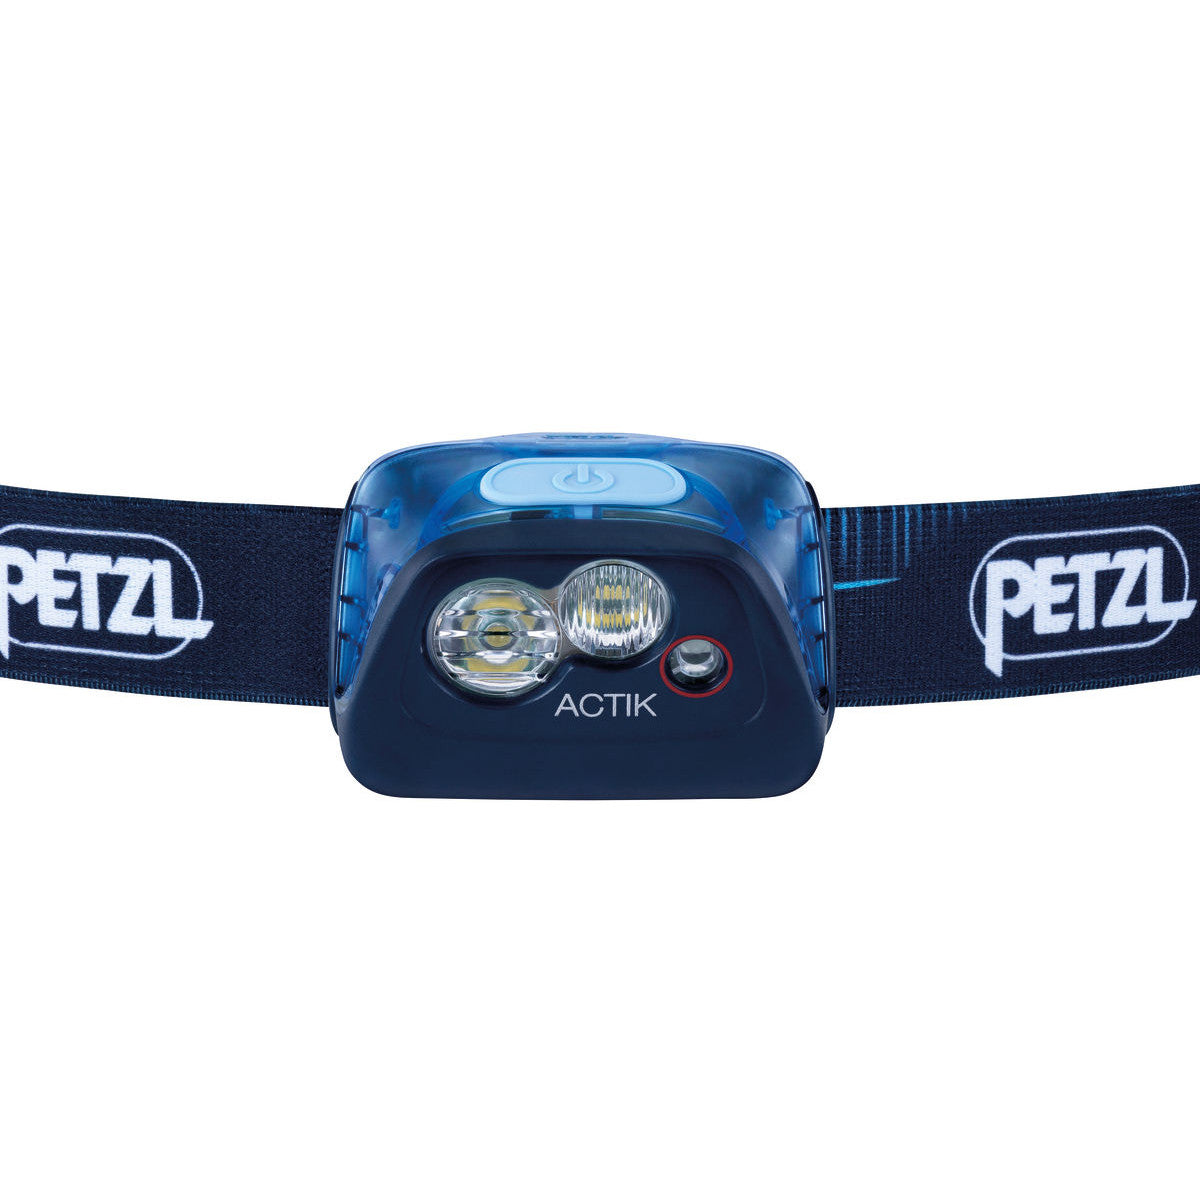 front view of the Petzl Actik Headtorch